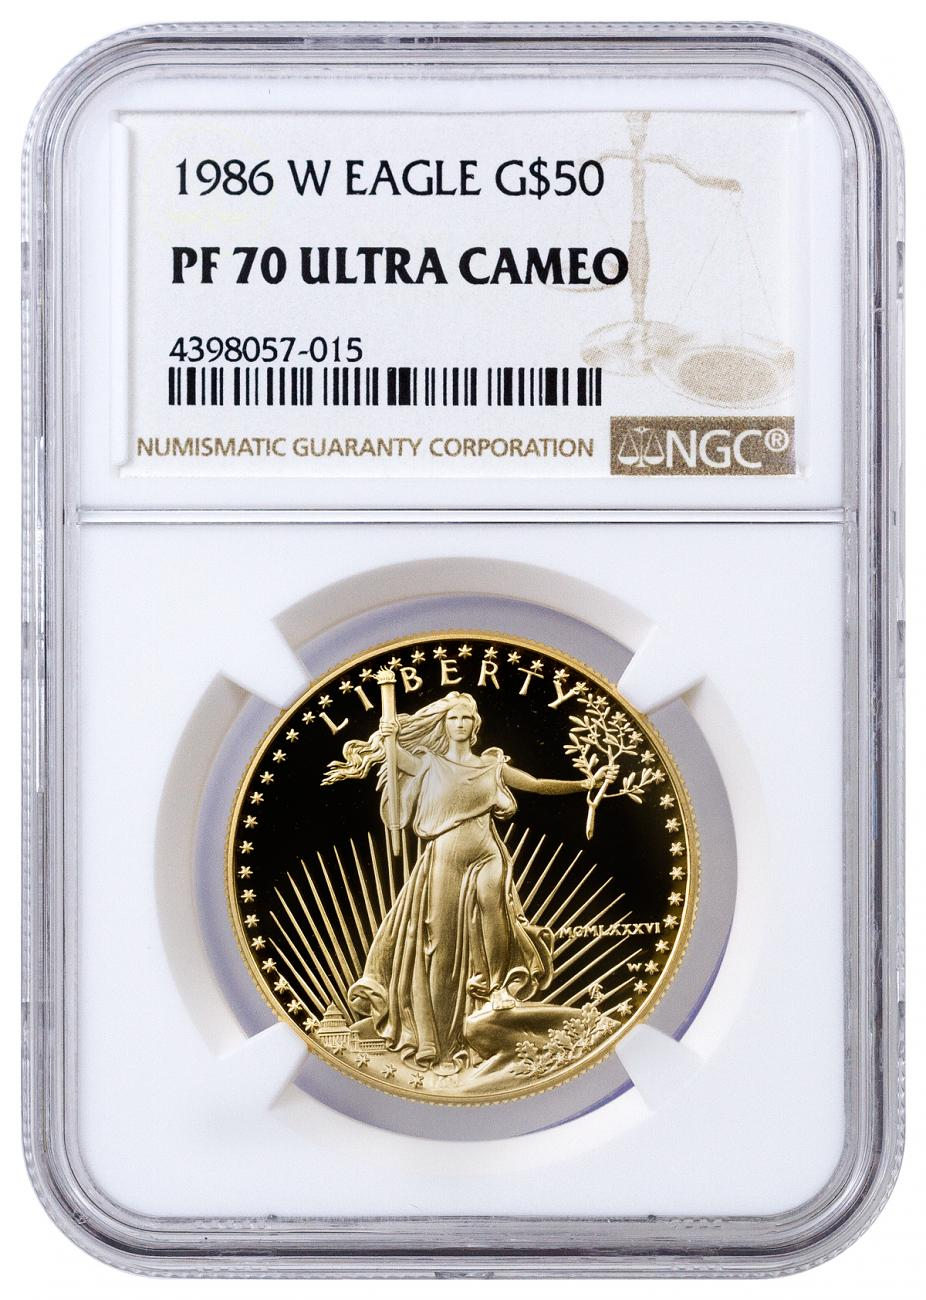 1986 W 1 Oz Gold American Eagle Proof 50 Ngc Pf70 Uc